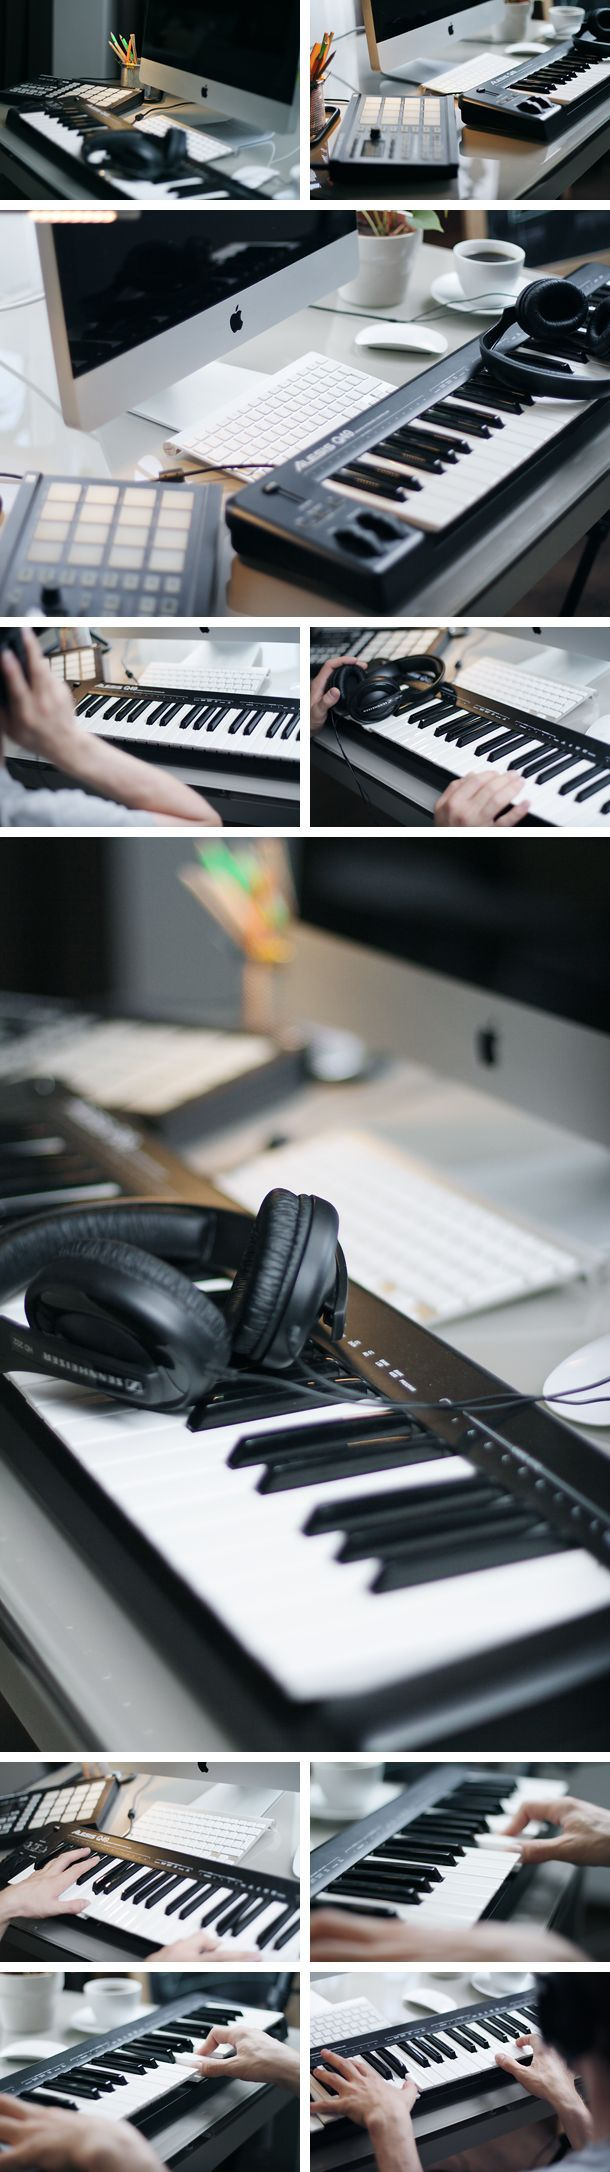 Music making and piano playing